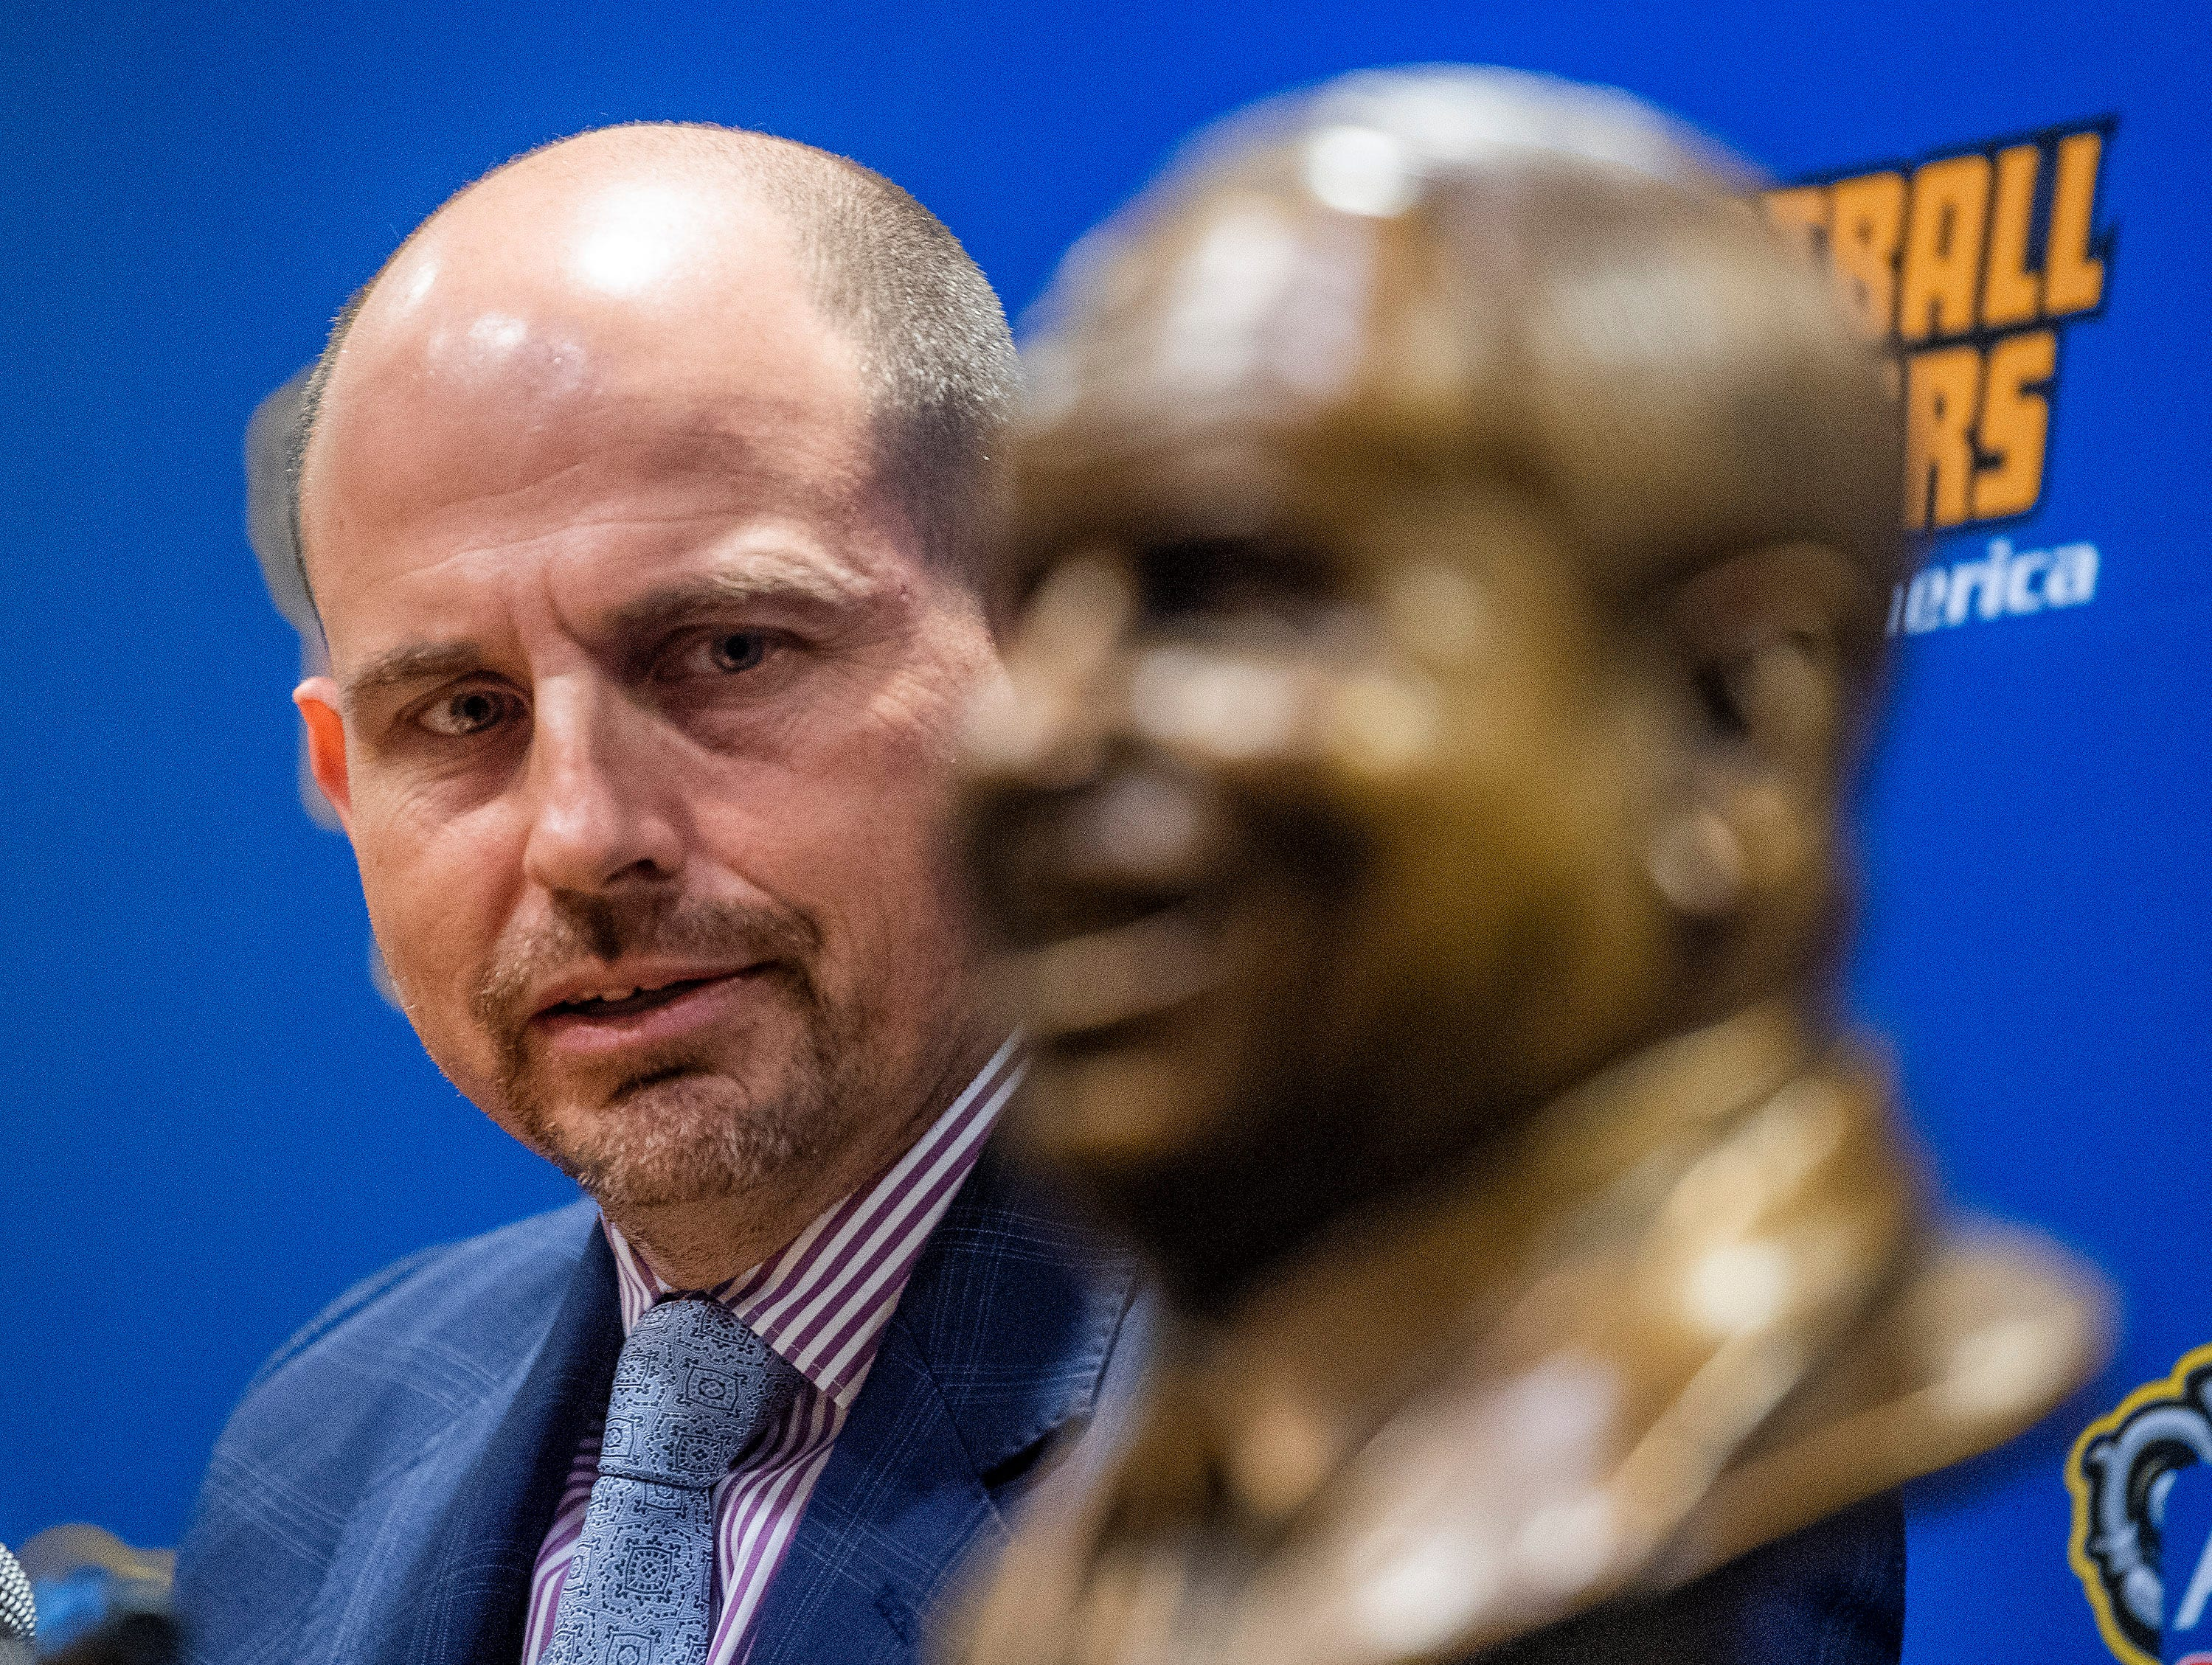 UAB football coach Bill Clark looks at the bust of Eddie Robinson as he responds to being presented the Eddie Robinson Coach of the Year Award during a ceremony in San Jose, Ca., on Saturday January 5, 2019.